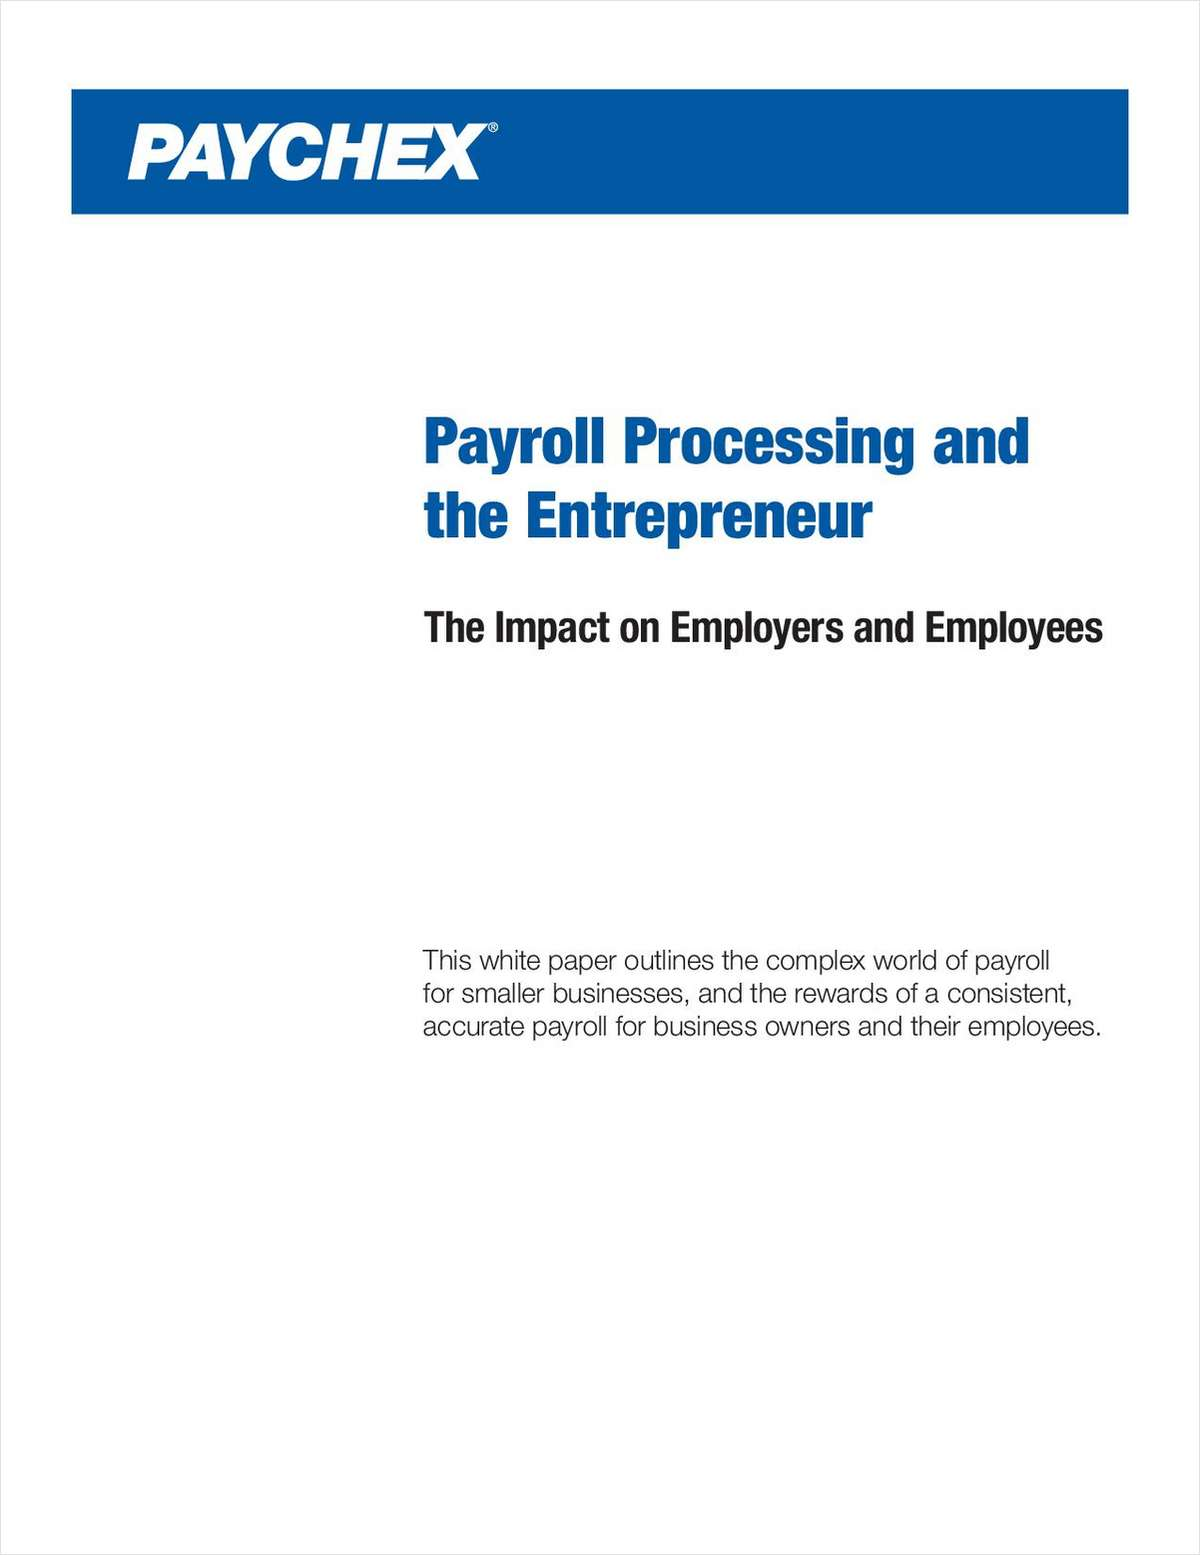 Payroll Processing and the Entrepreneur: The Impact on Employers and Employees + Get a Free Month of Payroll Processing